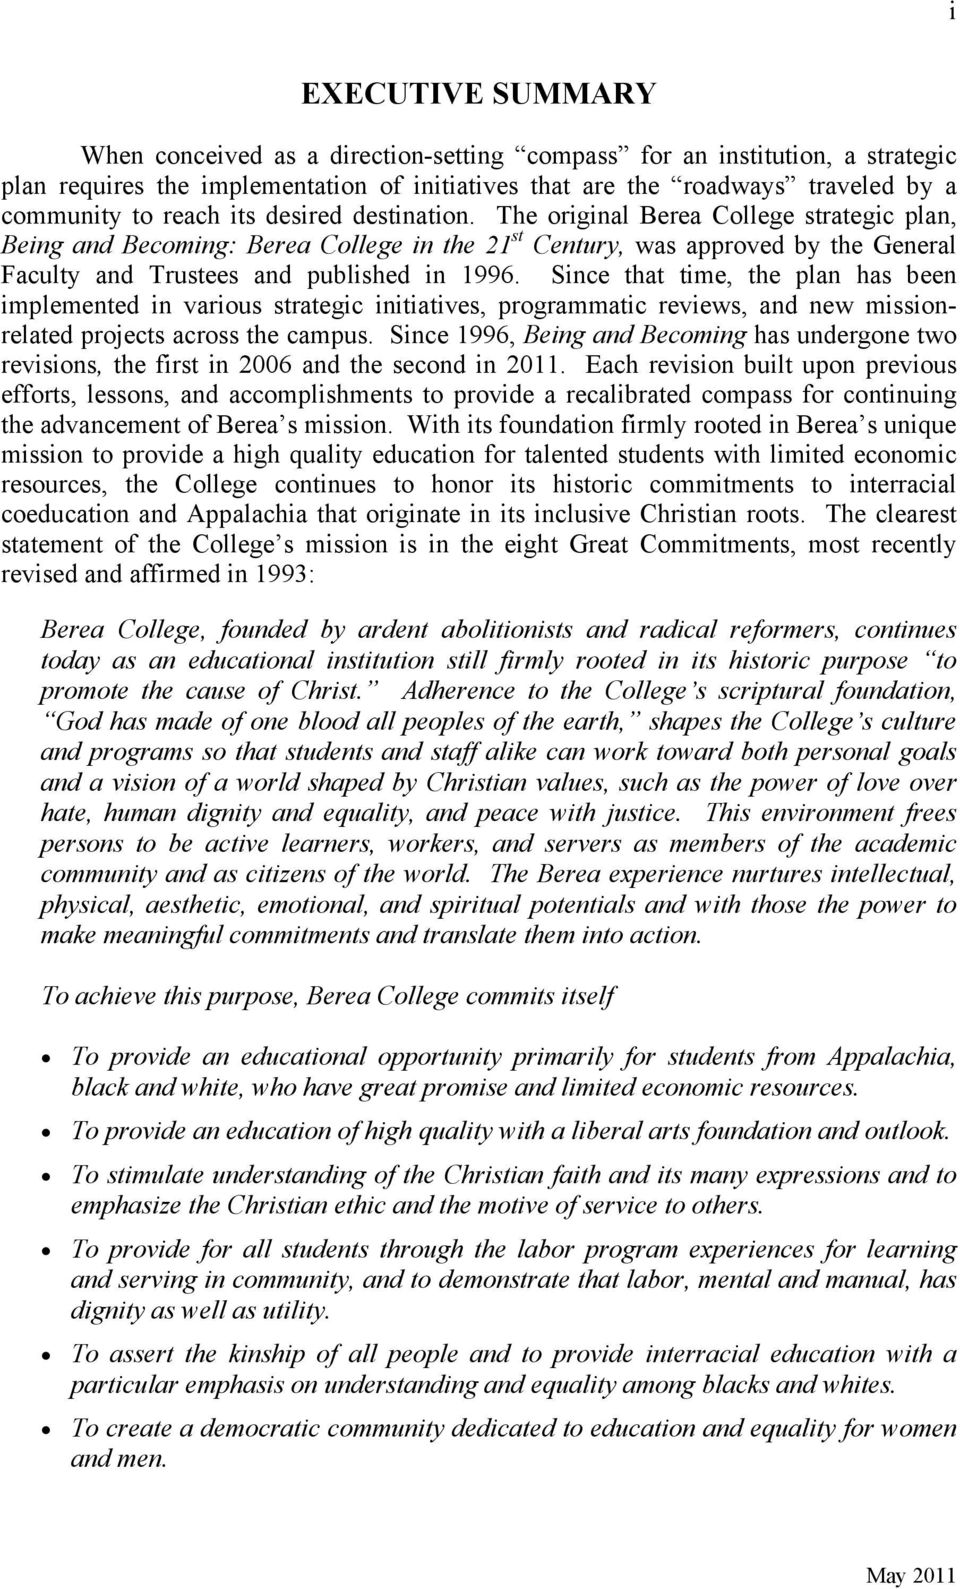 The original Berea College strategic plan, Being and Becoming: Berea College in the 21 st Century, was approved by the General Faculty and Trustees and published in 1996.